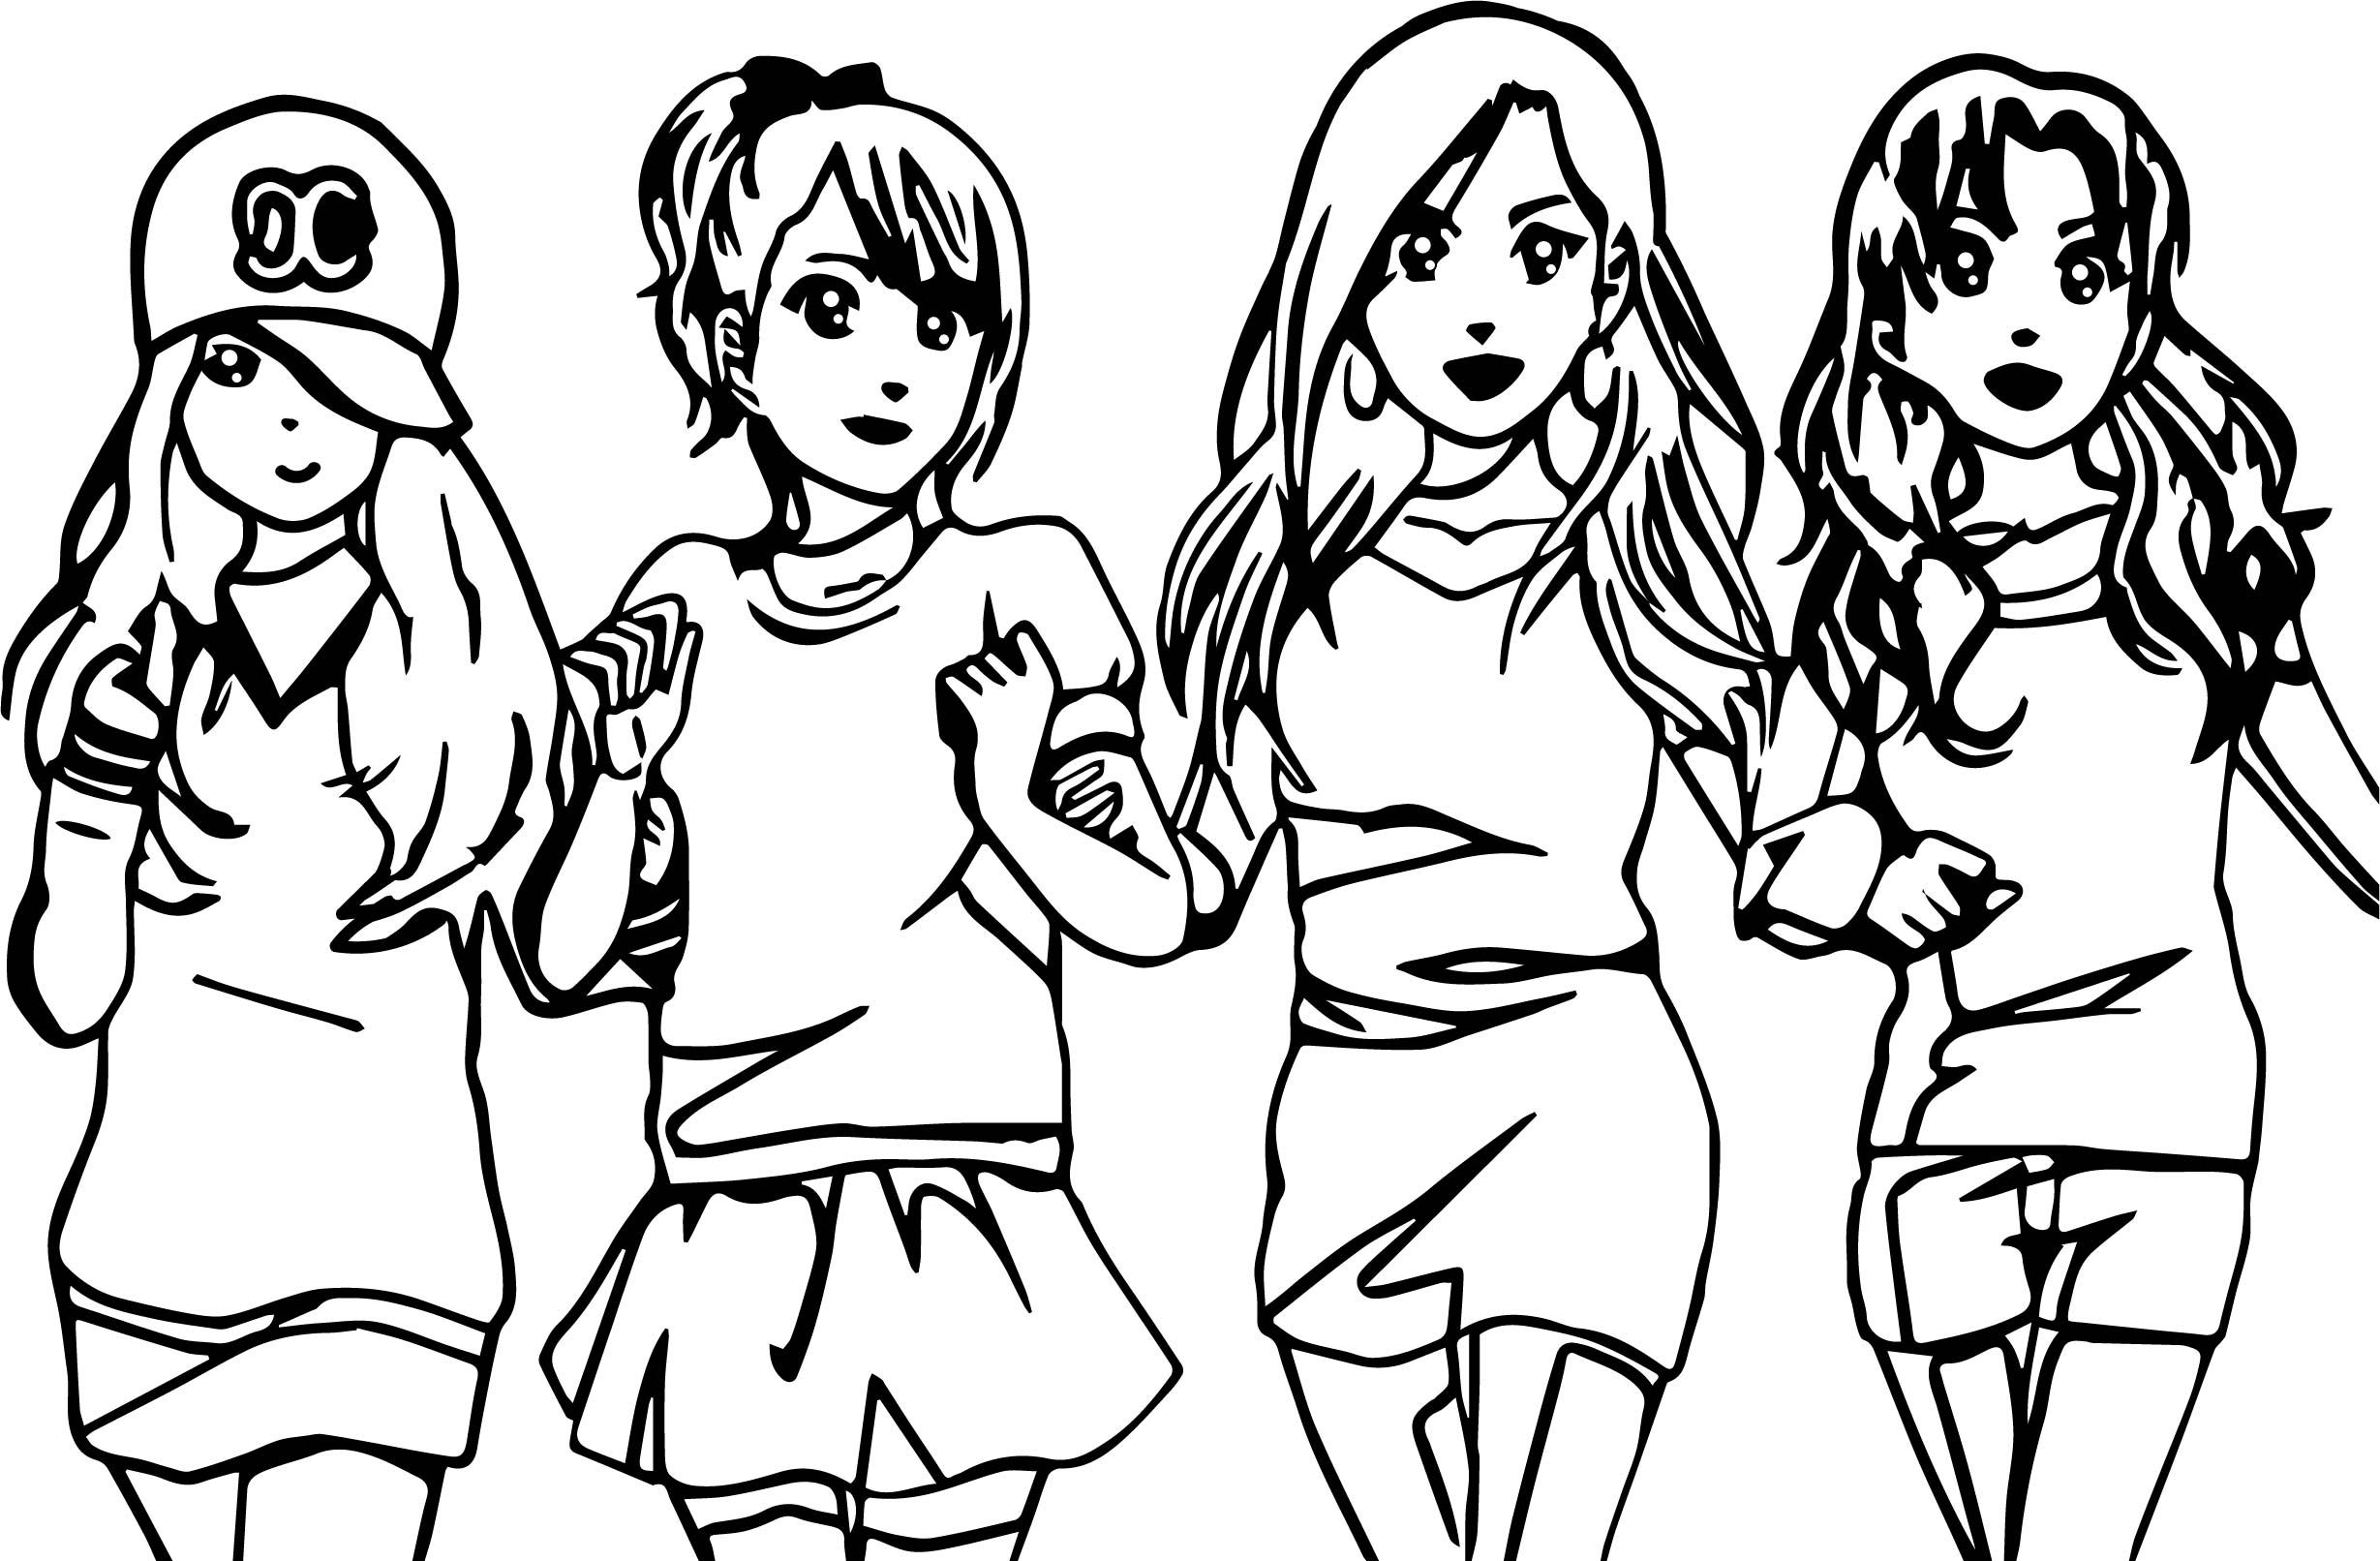 anime bff coloring pages awesome four anime best friends forever coloring page pages coloring bff anime